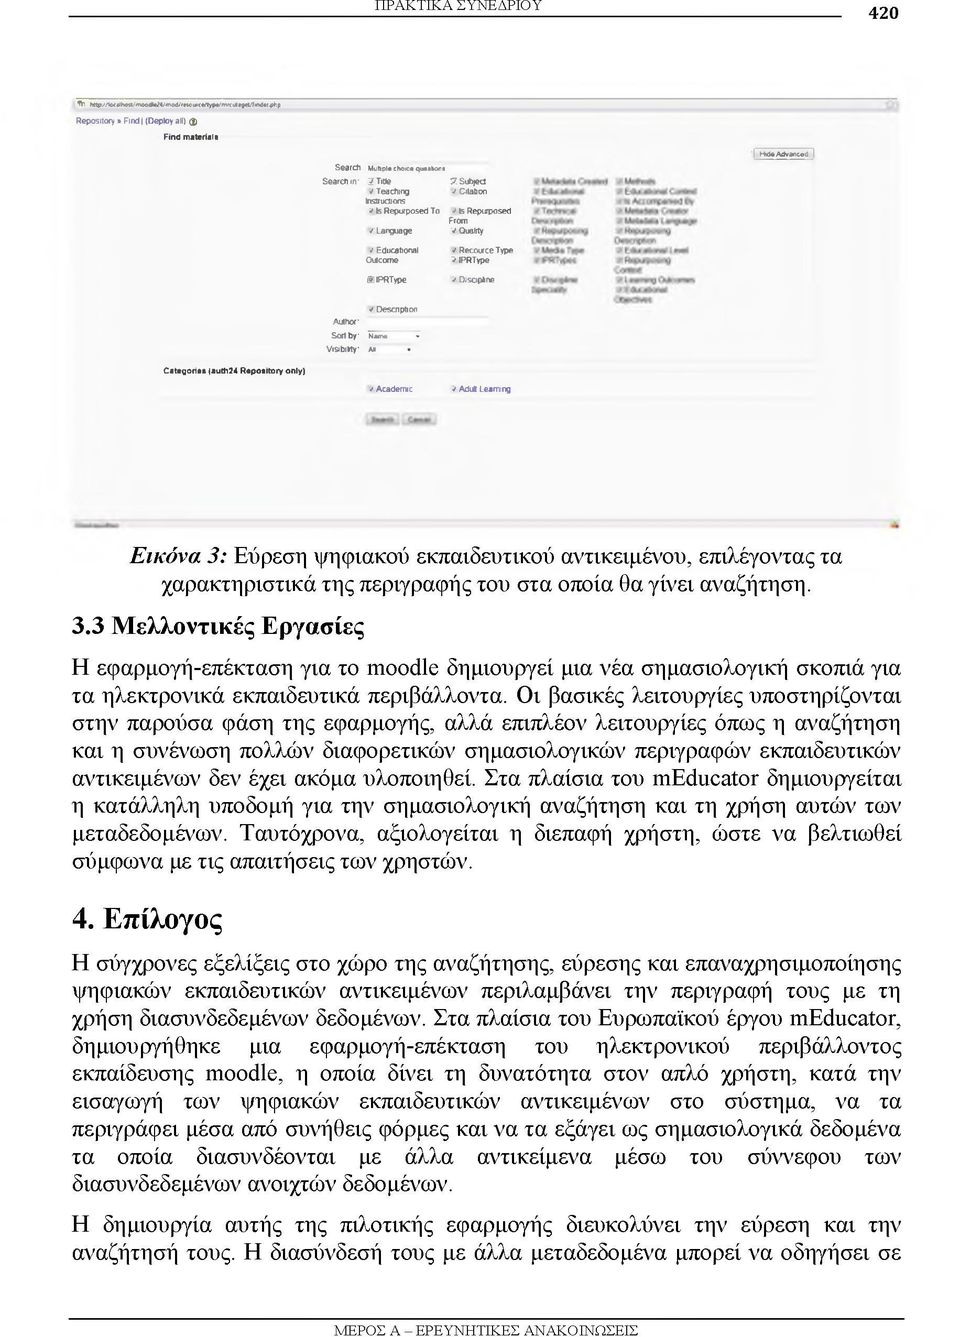 Description Author' Sort by* Nam * Visibility' a i - Categories (auth24 Repository only) 2 i Academic V Adult Learning Εικόνα 3: Εύρεση ψηφιακού εκπαιδευτικού αντικειμένου, επιλέγοντας τα